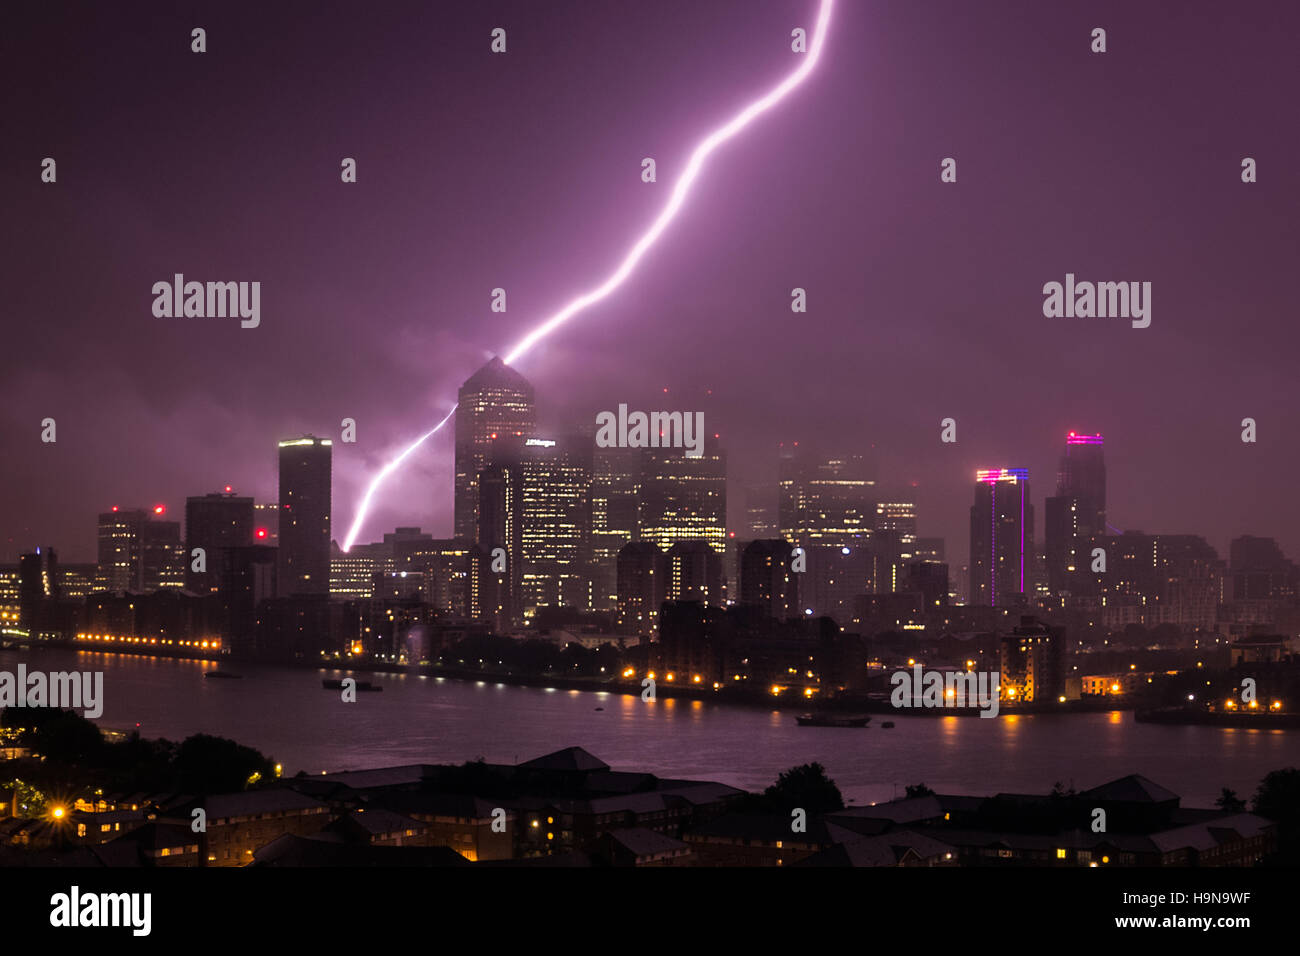 Massive Lightning strike just behind Canary Wharf business park buildings and River Thames in London, UK. Stock Photo